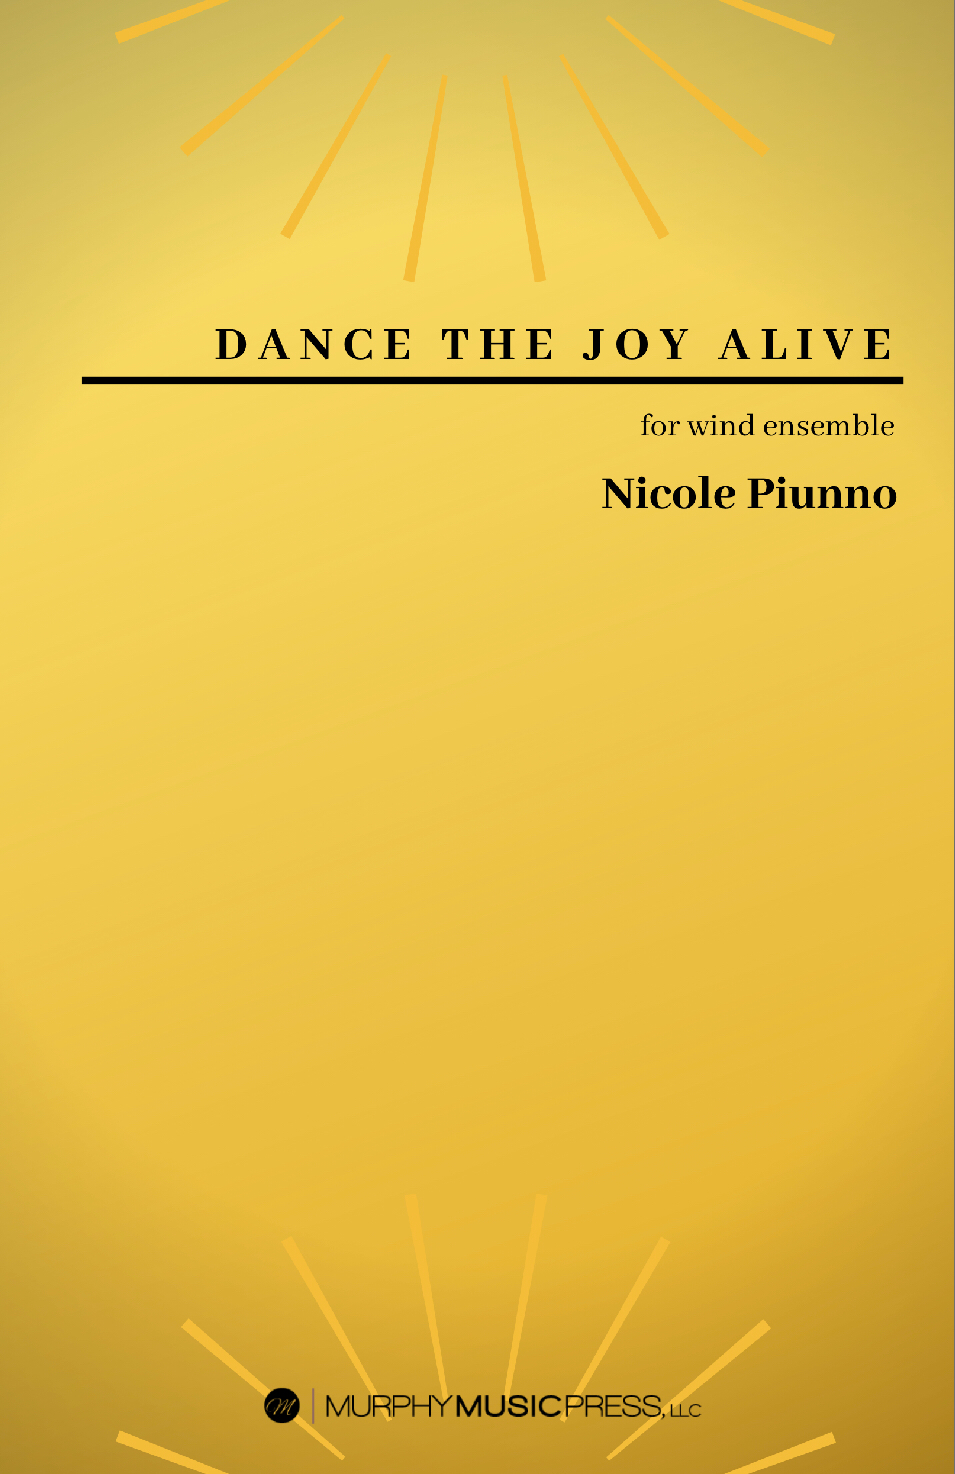 Dance The Joy Alive  by Nicole Piunno